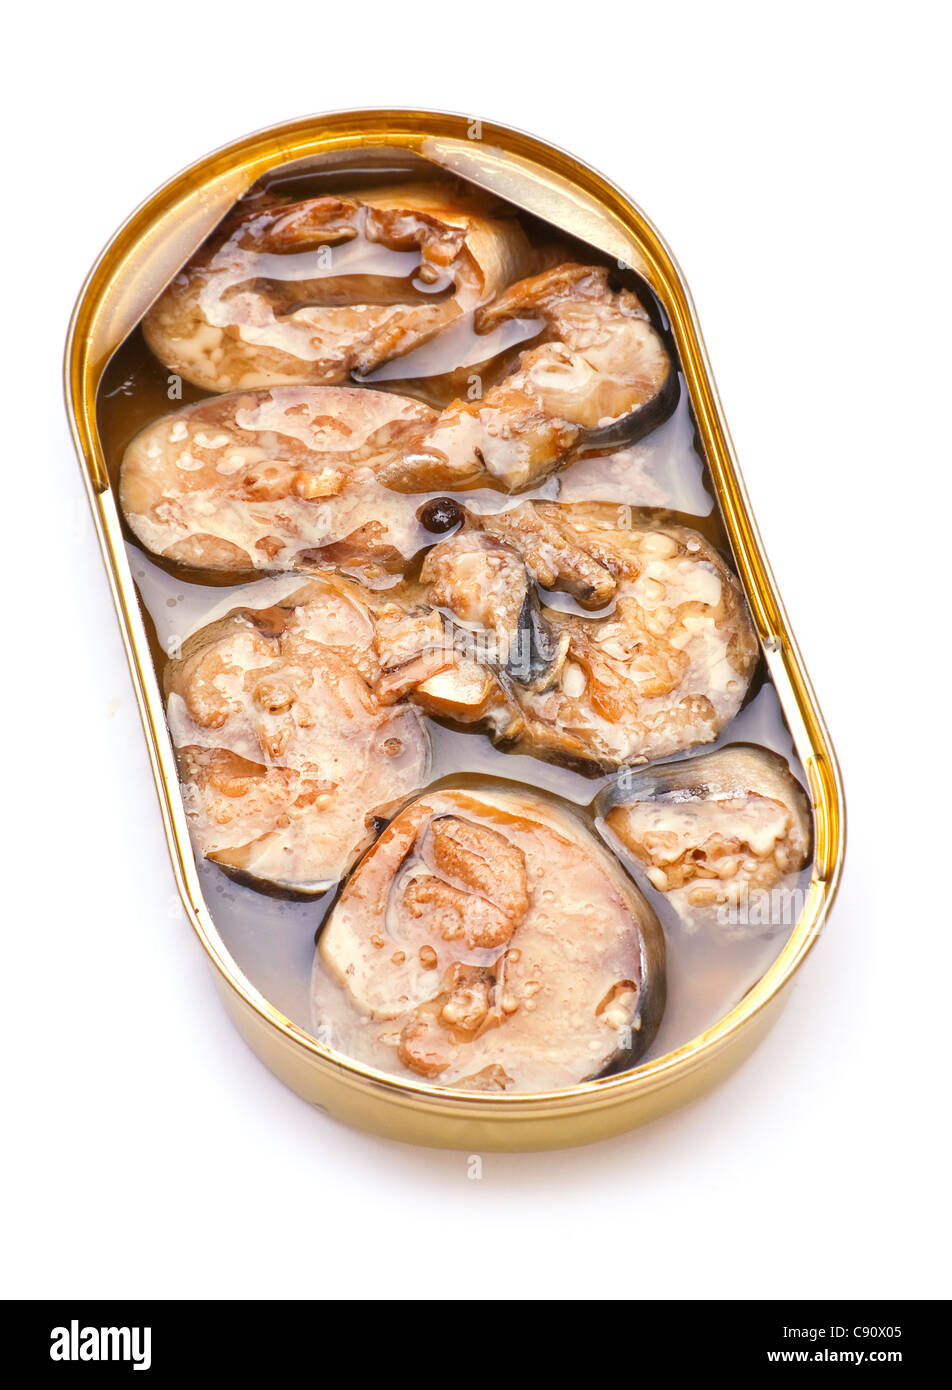 Sprat preserved fish in metal can on white - Stock Image